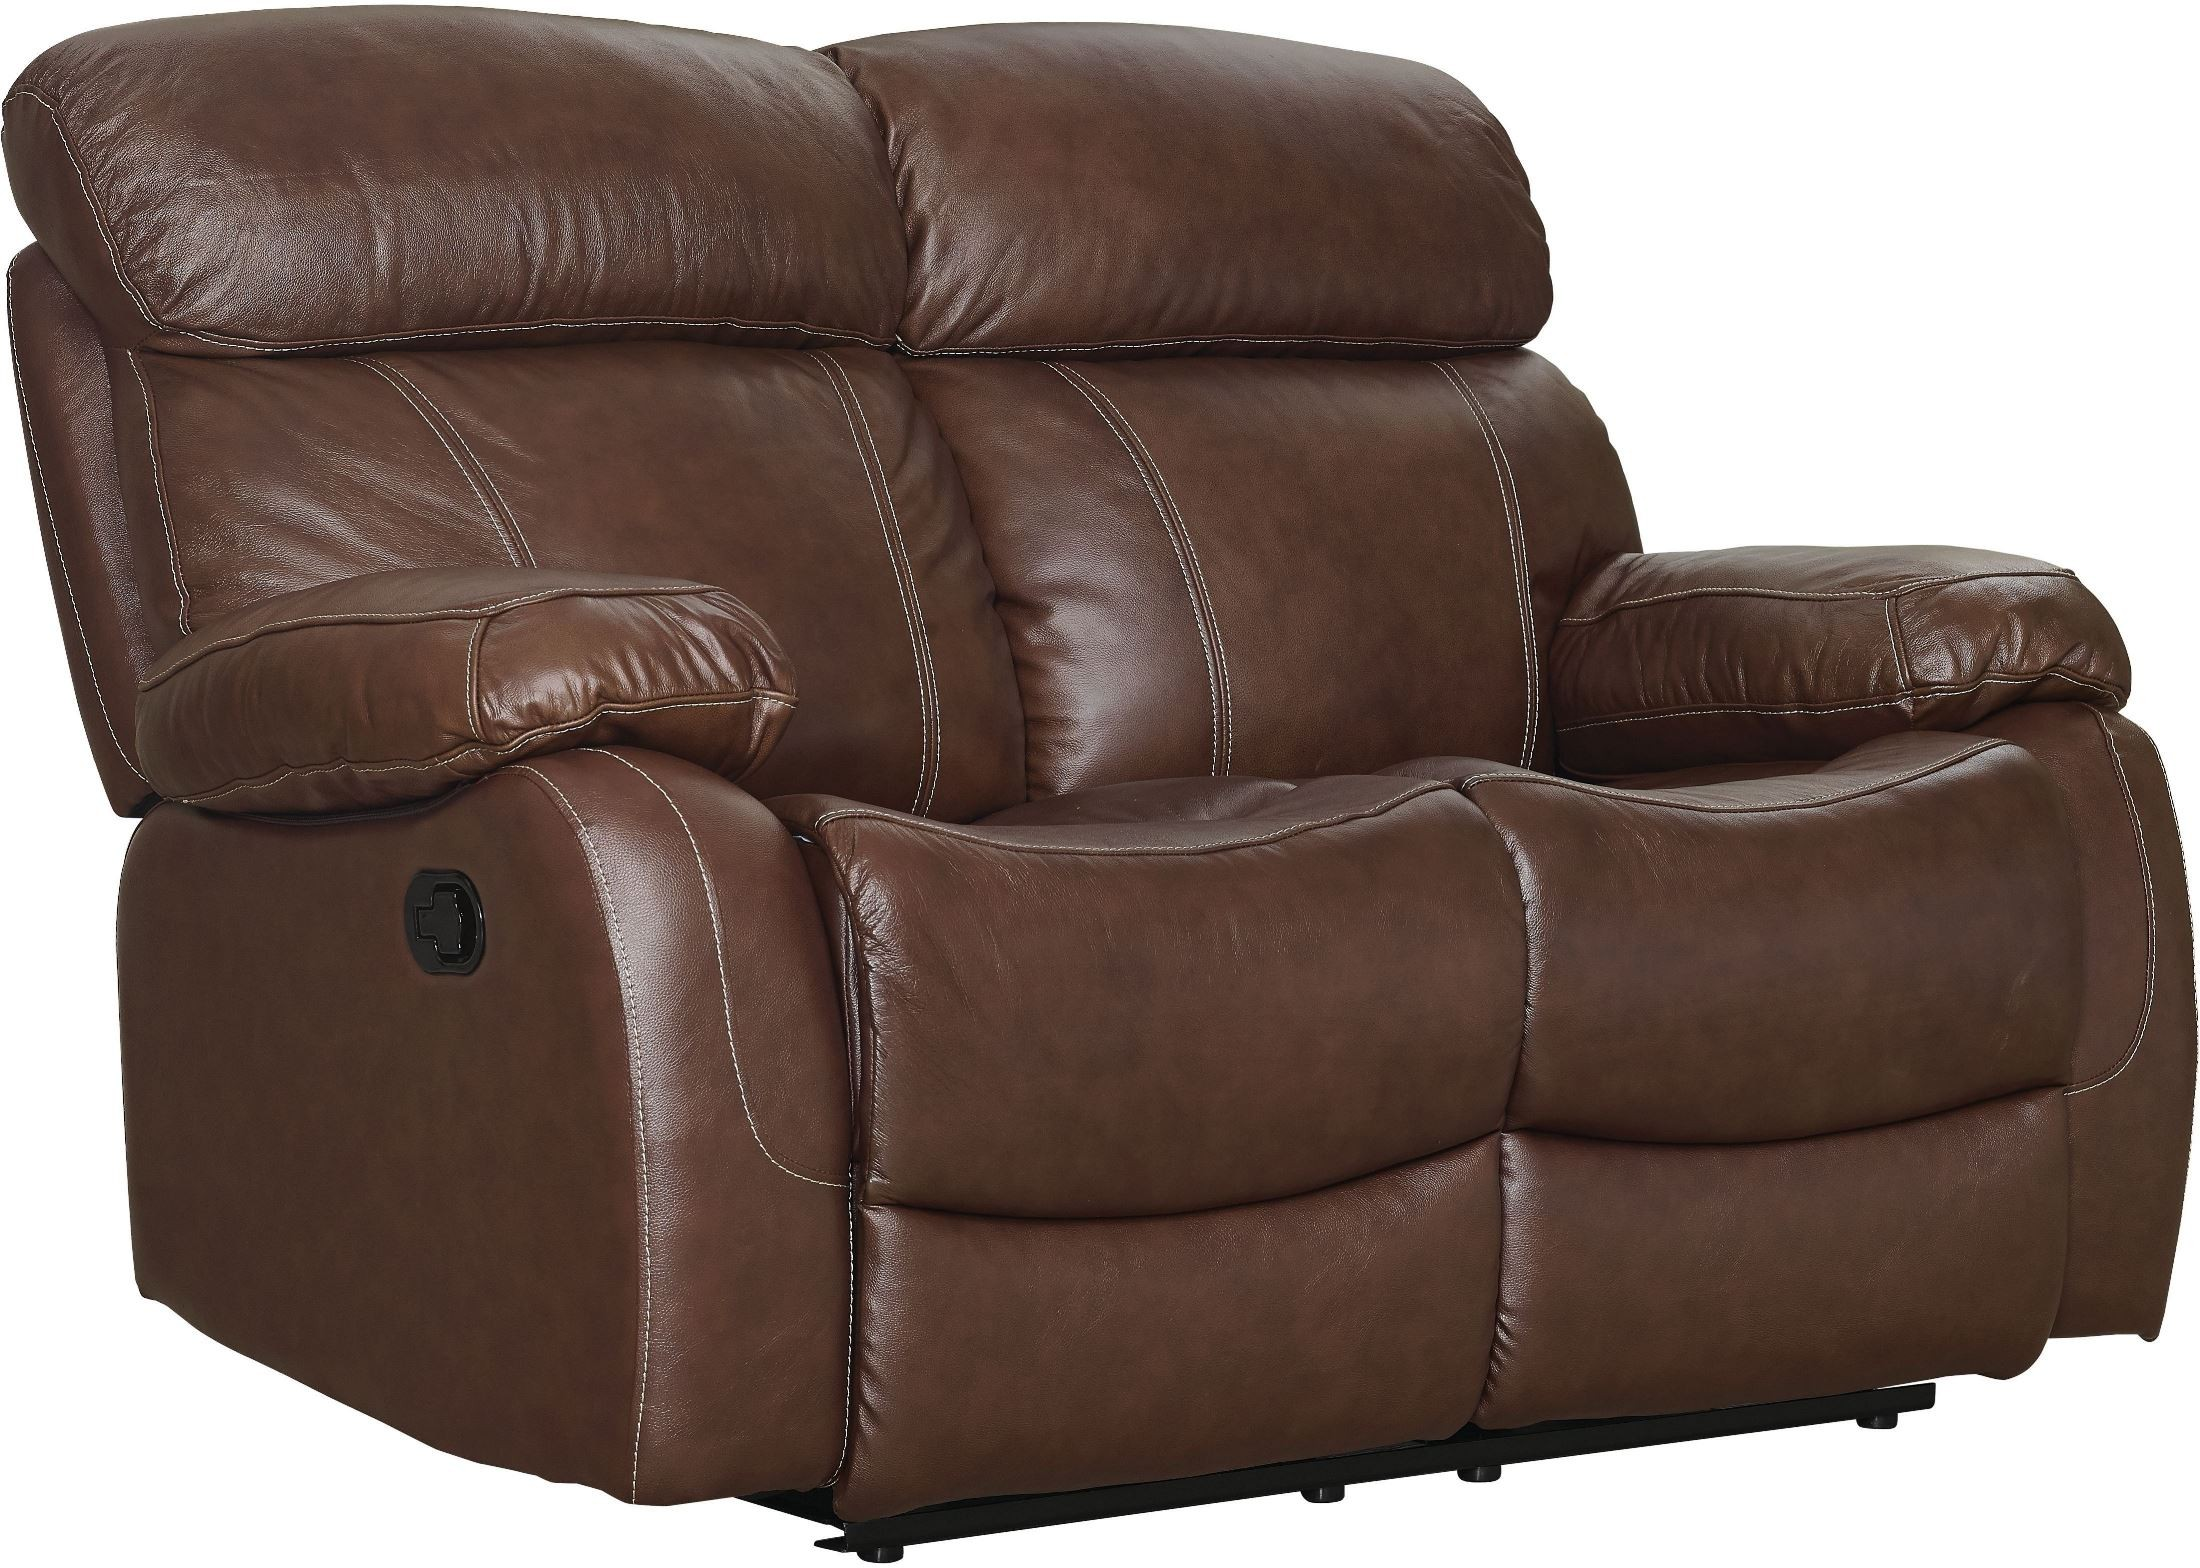 Dante Light Brown Reclining Loveseat L2041 20 Lbn New Classics